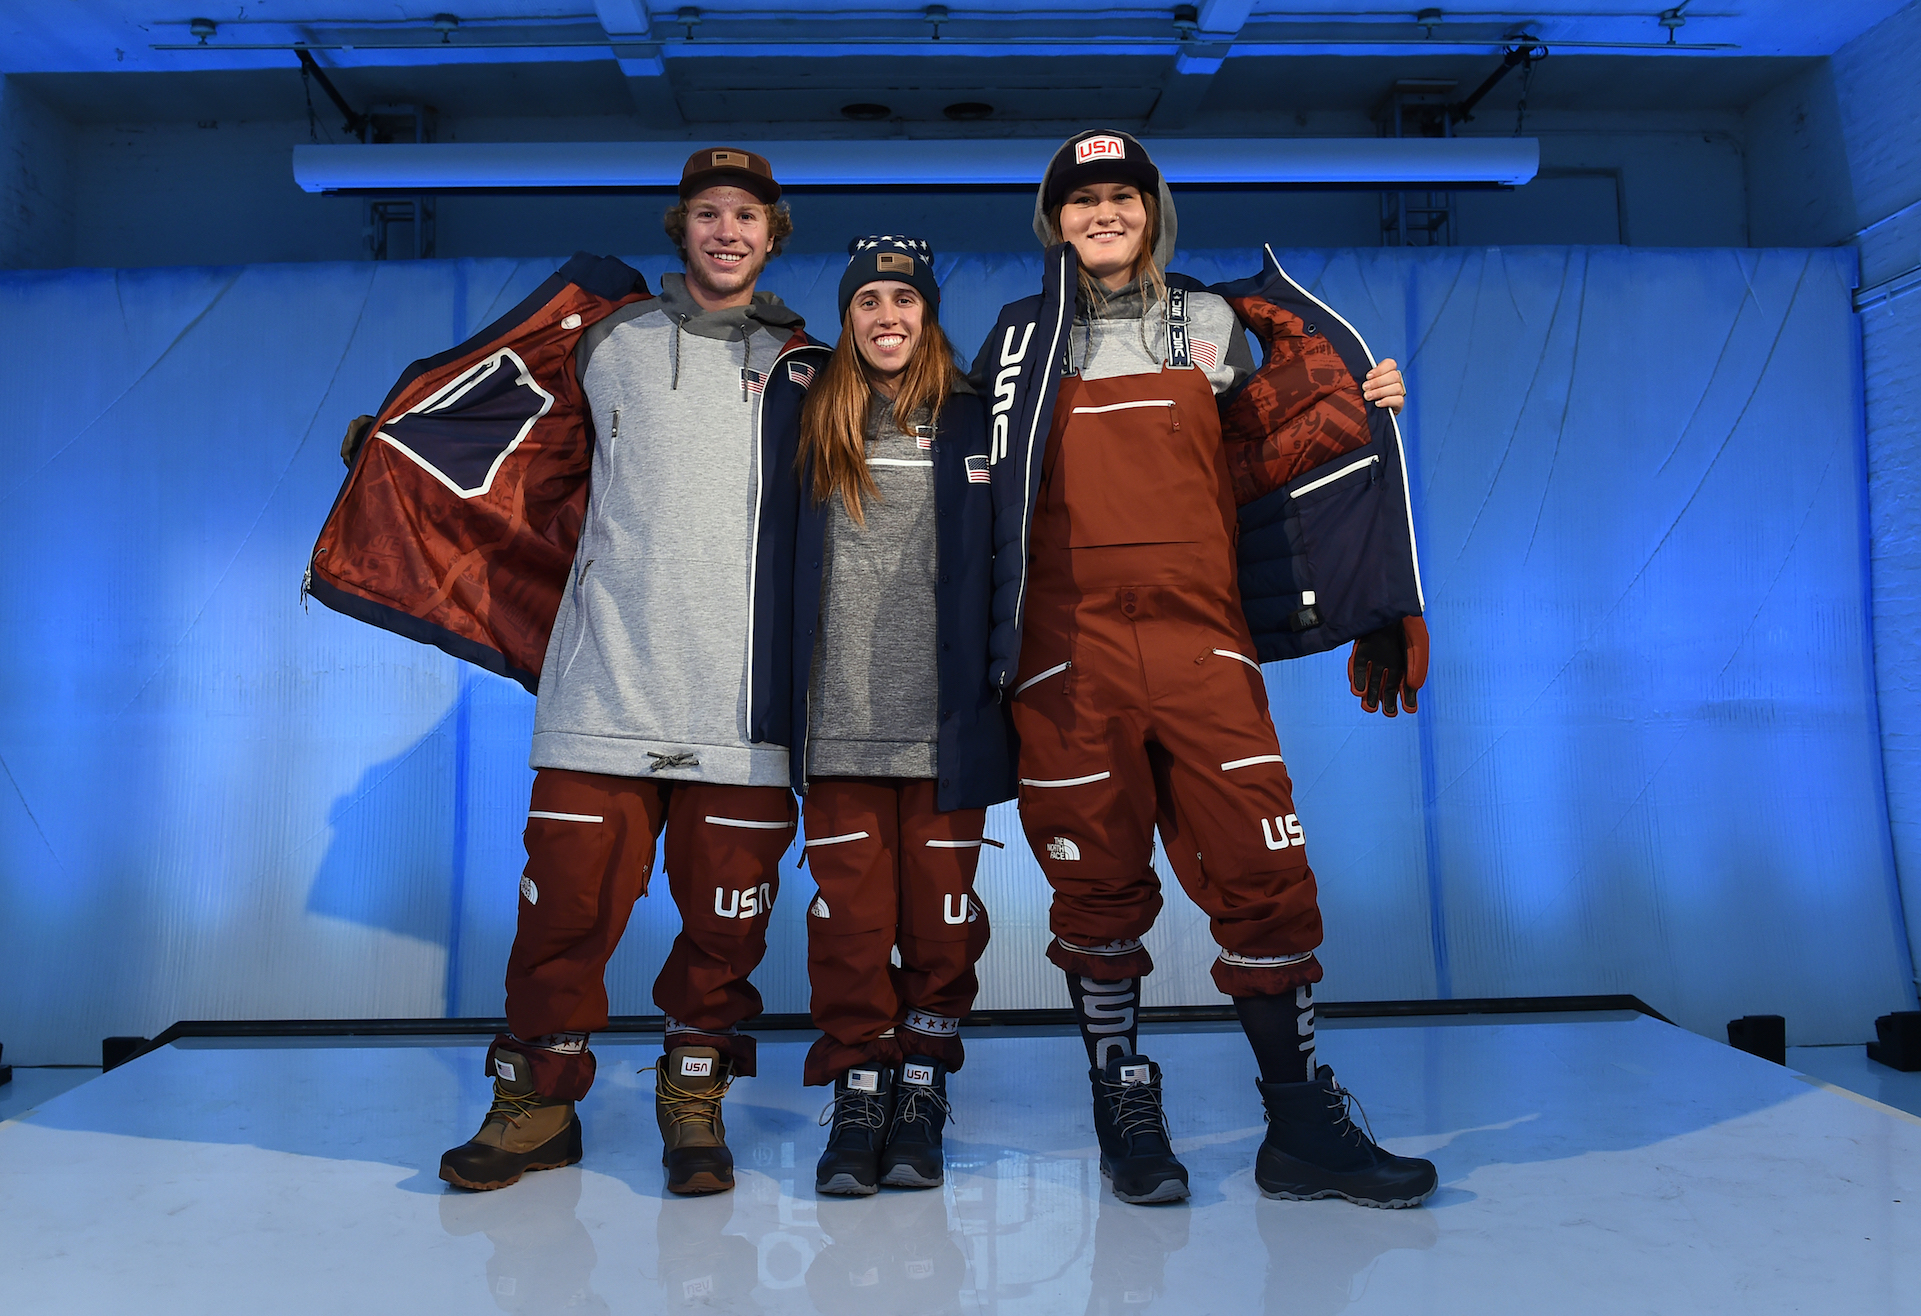 The North Face Unveils 2018 Olympic Uniforms